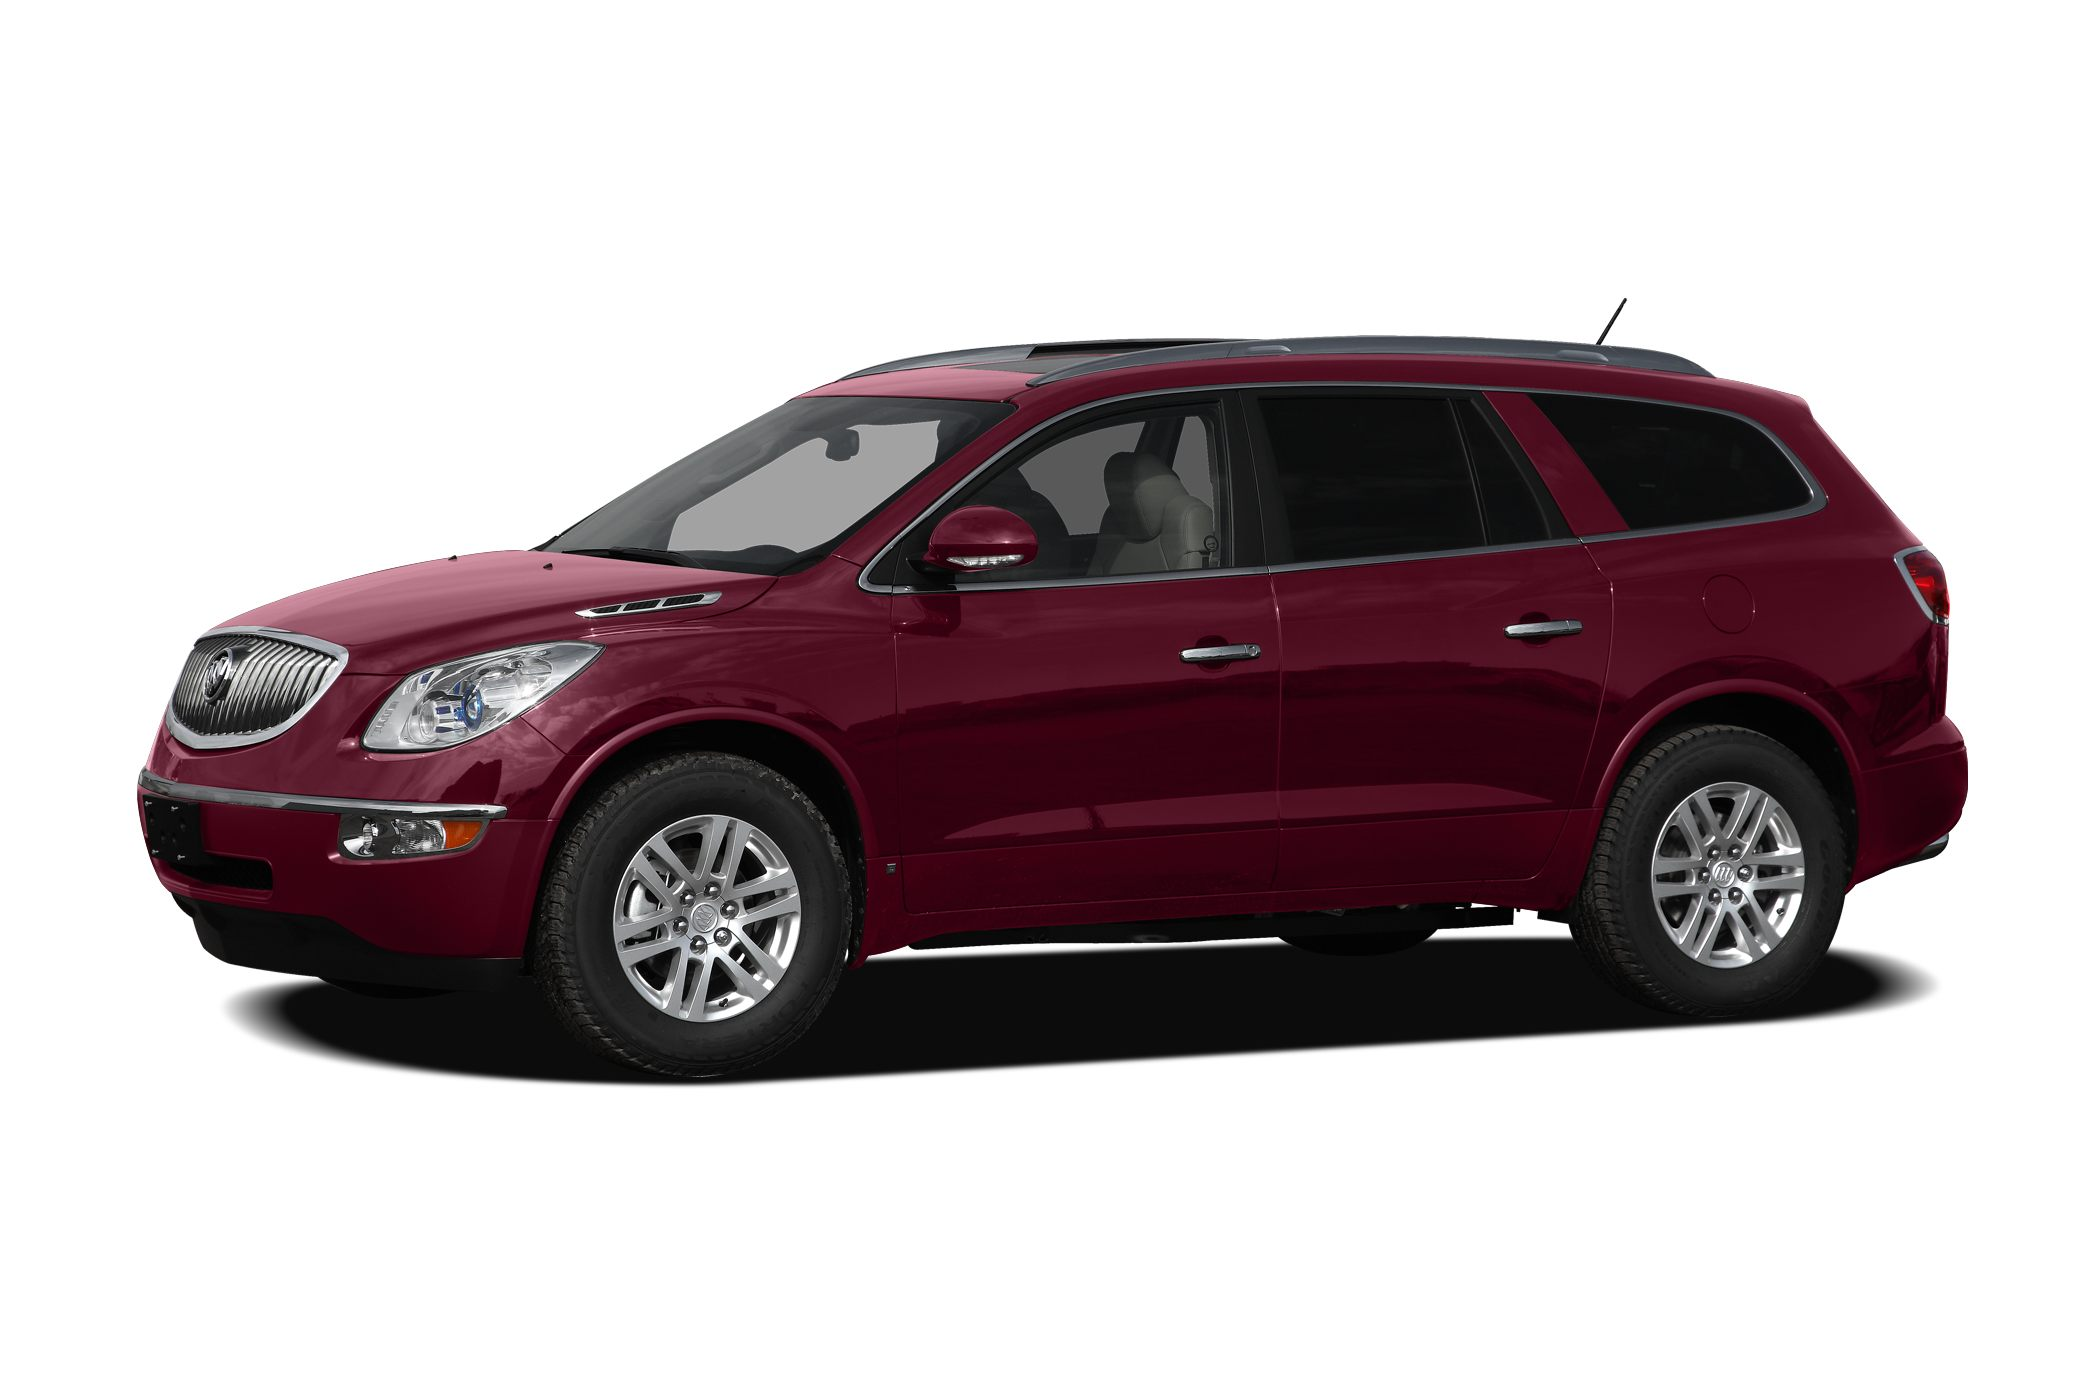 2011 Buick Enclave 1XL SUV for sale in Newark for $26,999 with 12,107 miles.